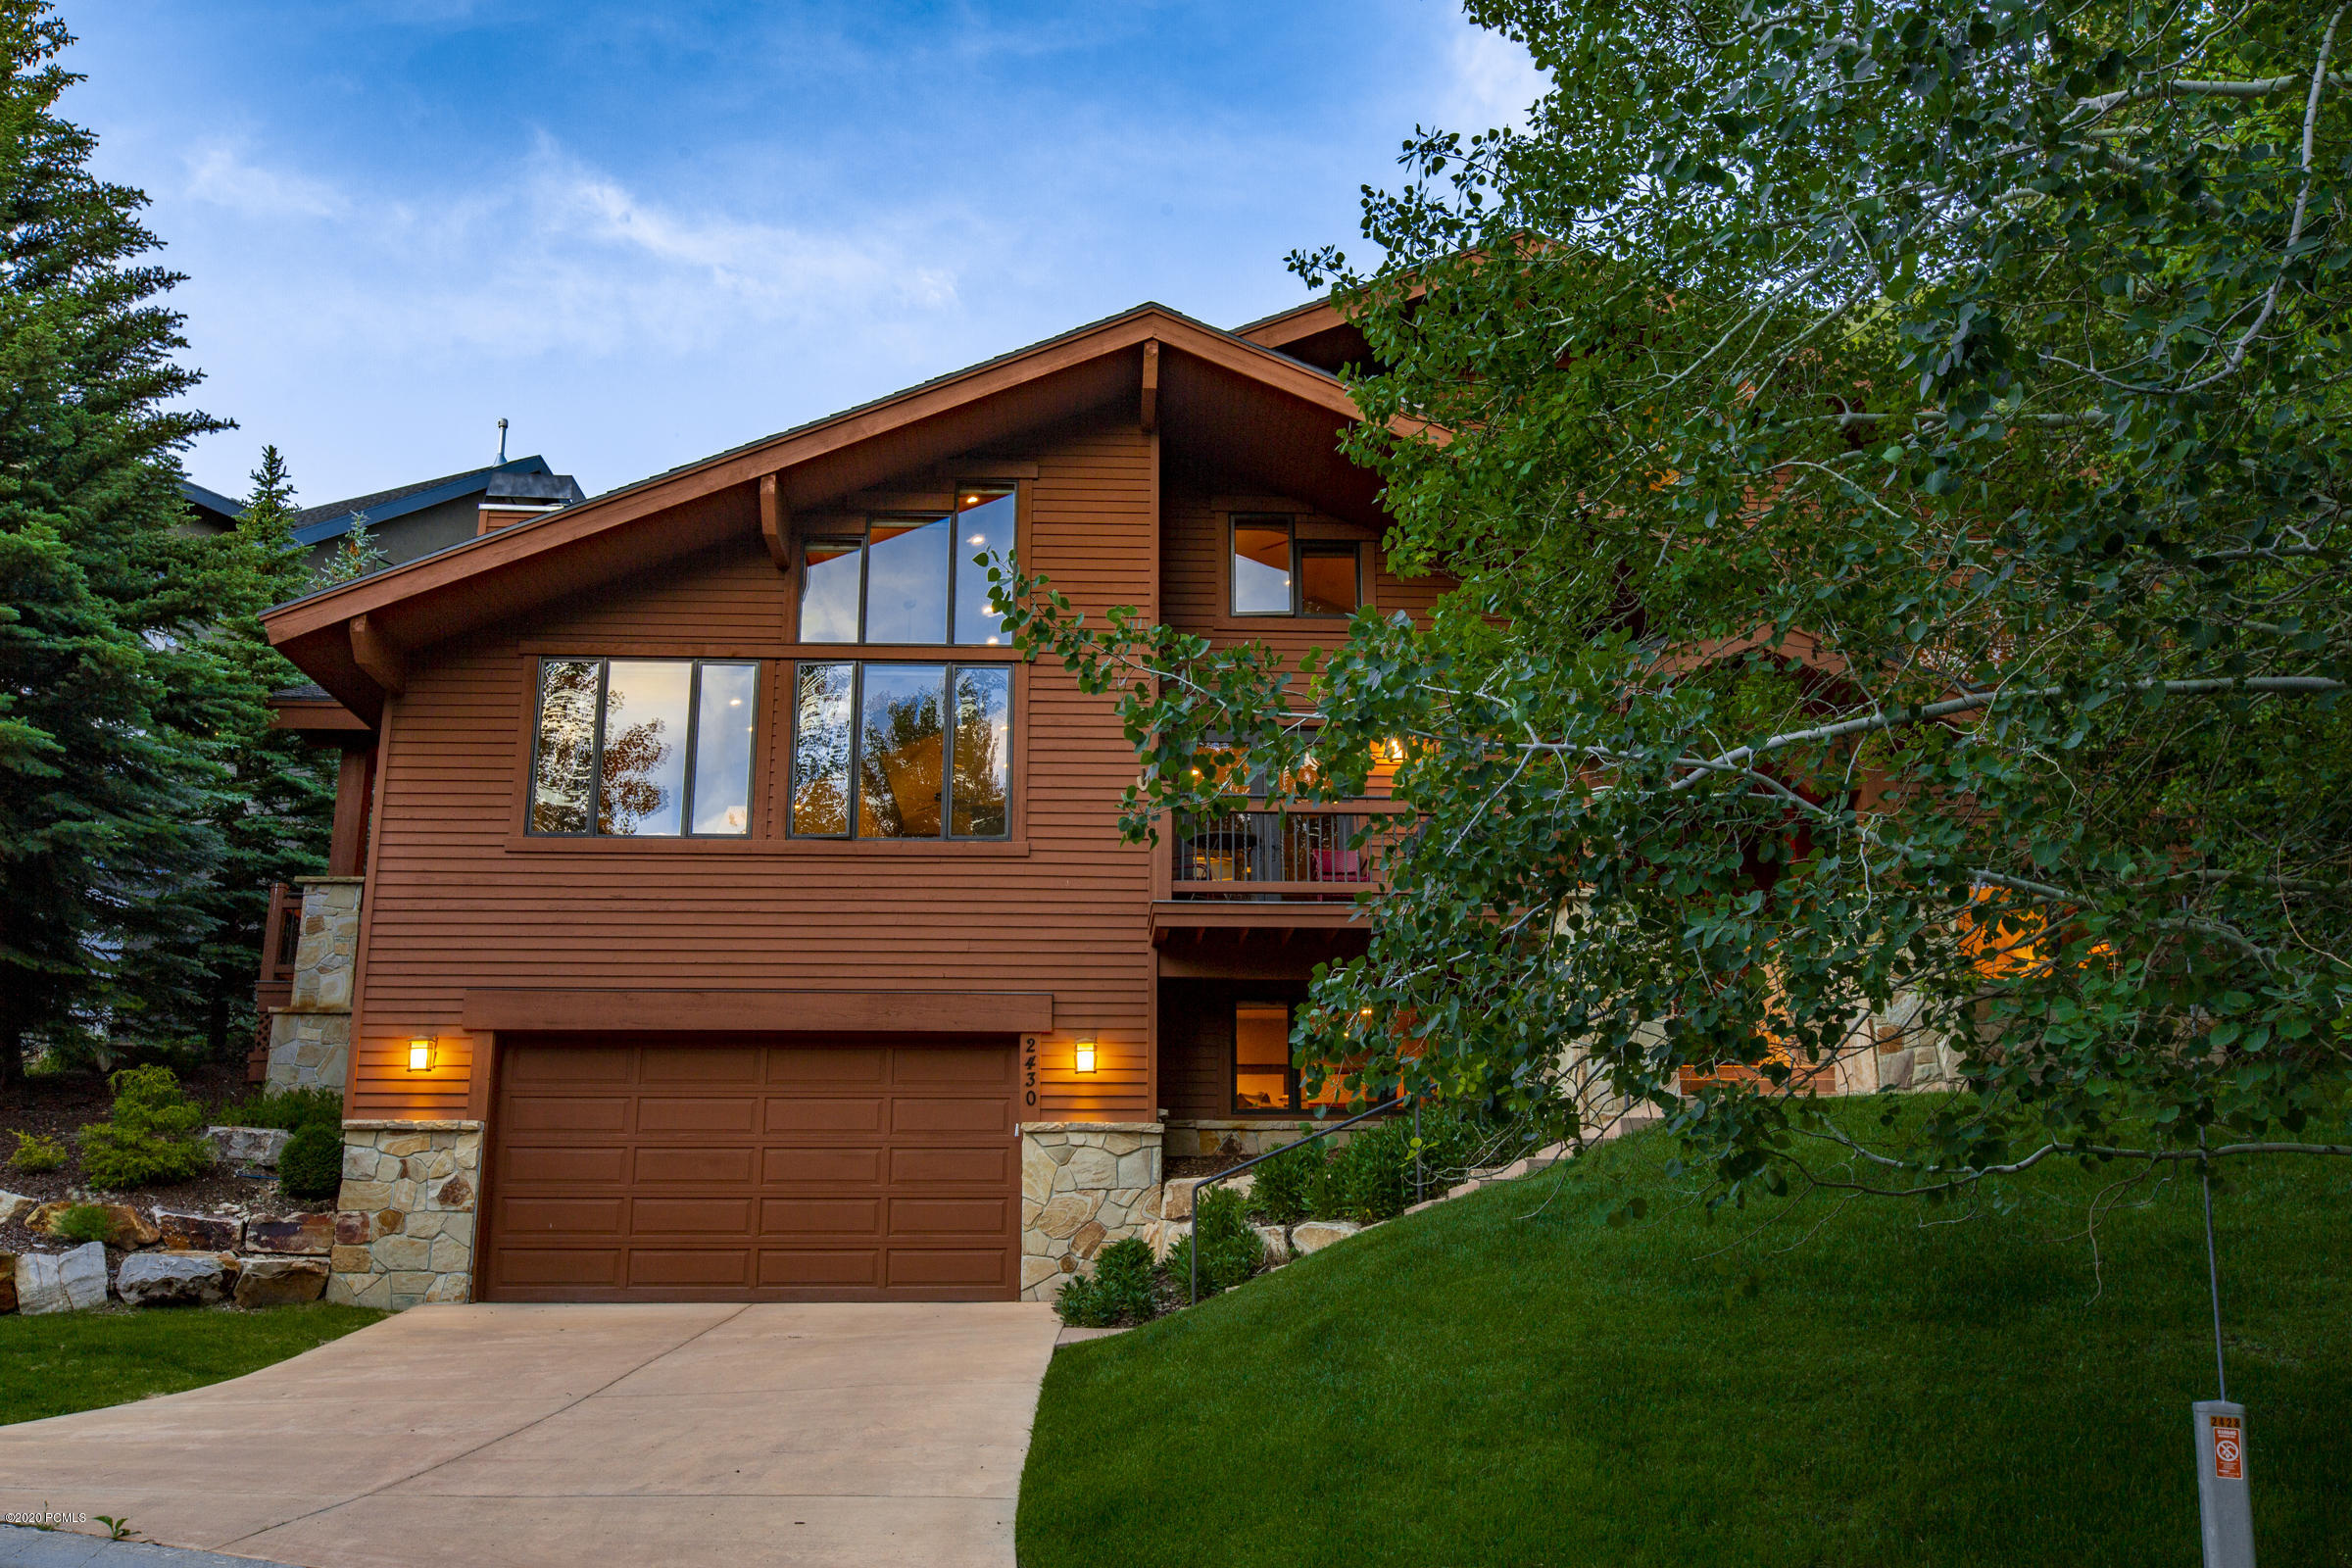 2430 Nanson Court, Park City, Utah 84060, 4 Bedrooms Bedrooms, ,5 BathroomsBathrooms,Single Family,For Sale,Nanson,20190109112430415765000000